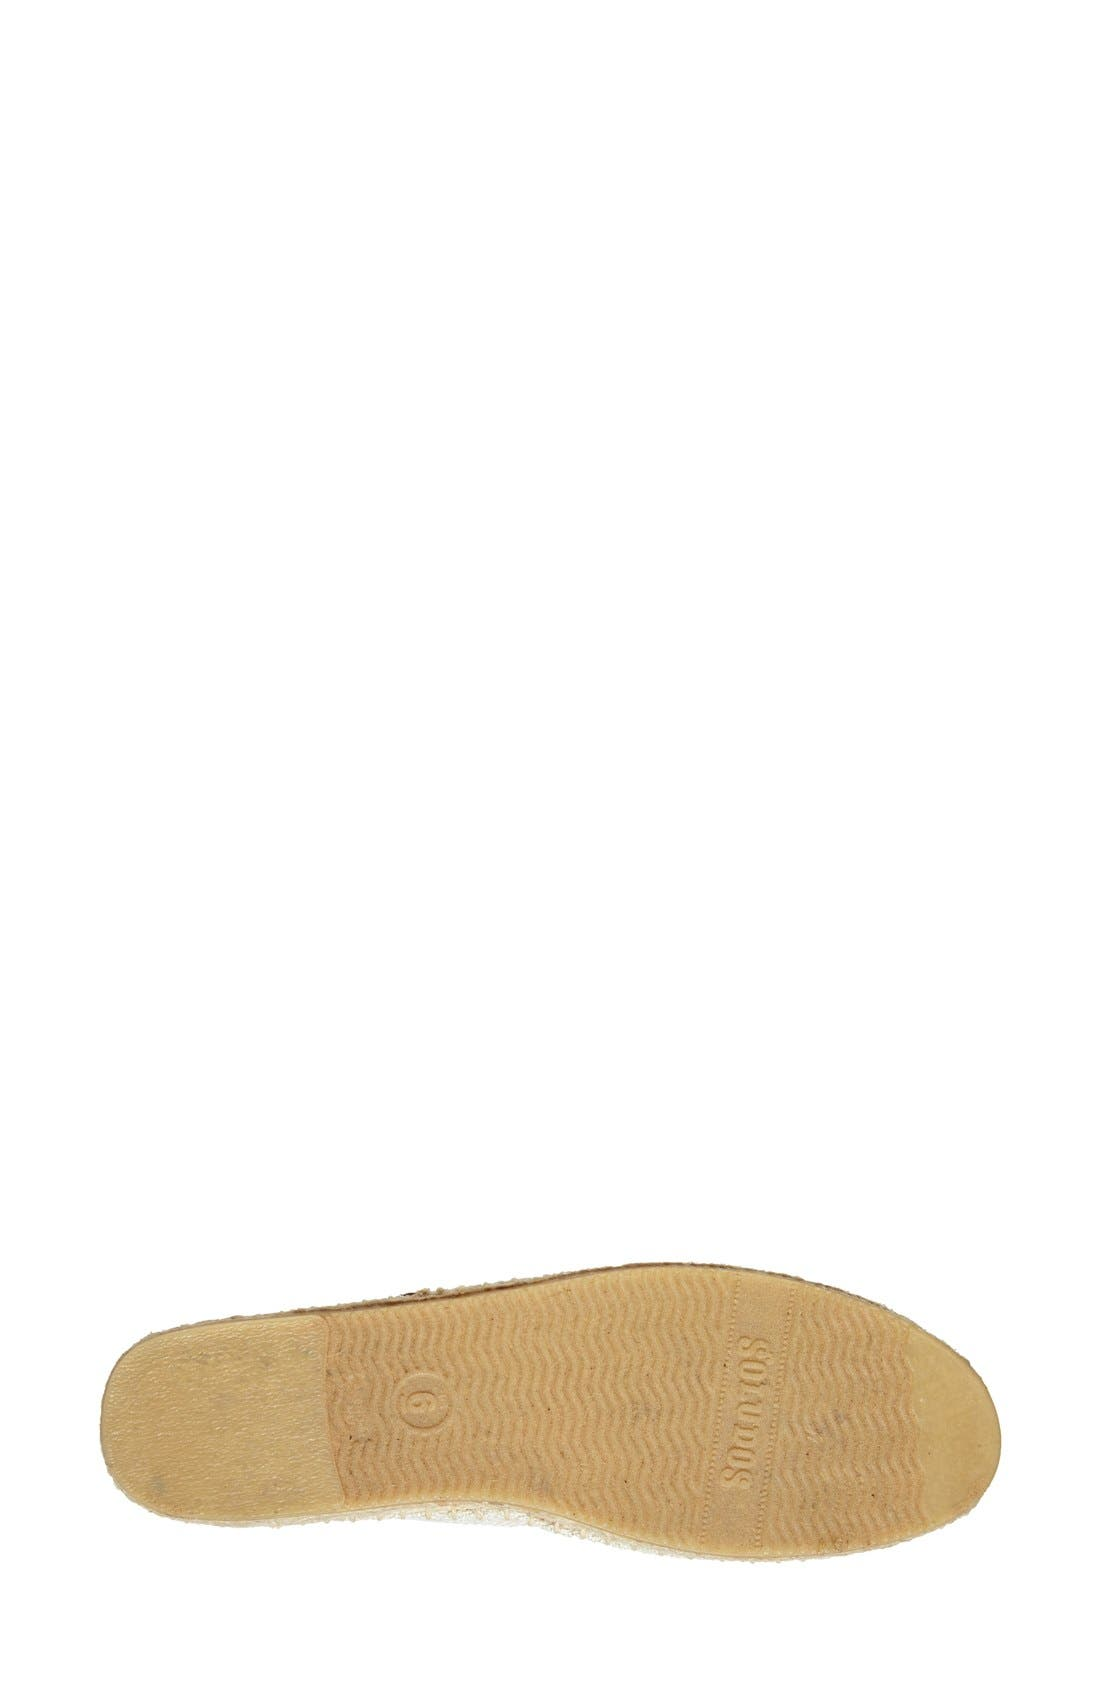 Jason Polan Espadrille Sandal,                             Alternate thumbnail 4, color,                             WINK SAND